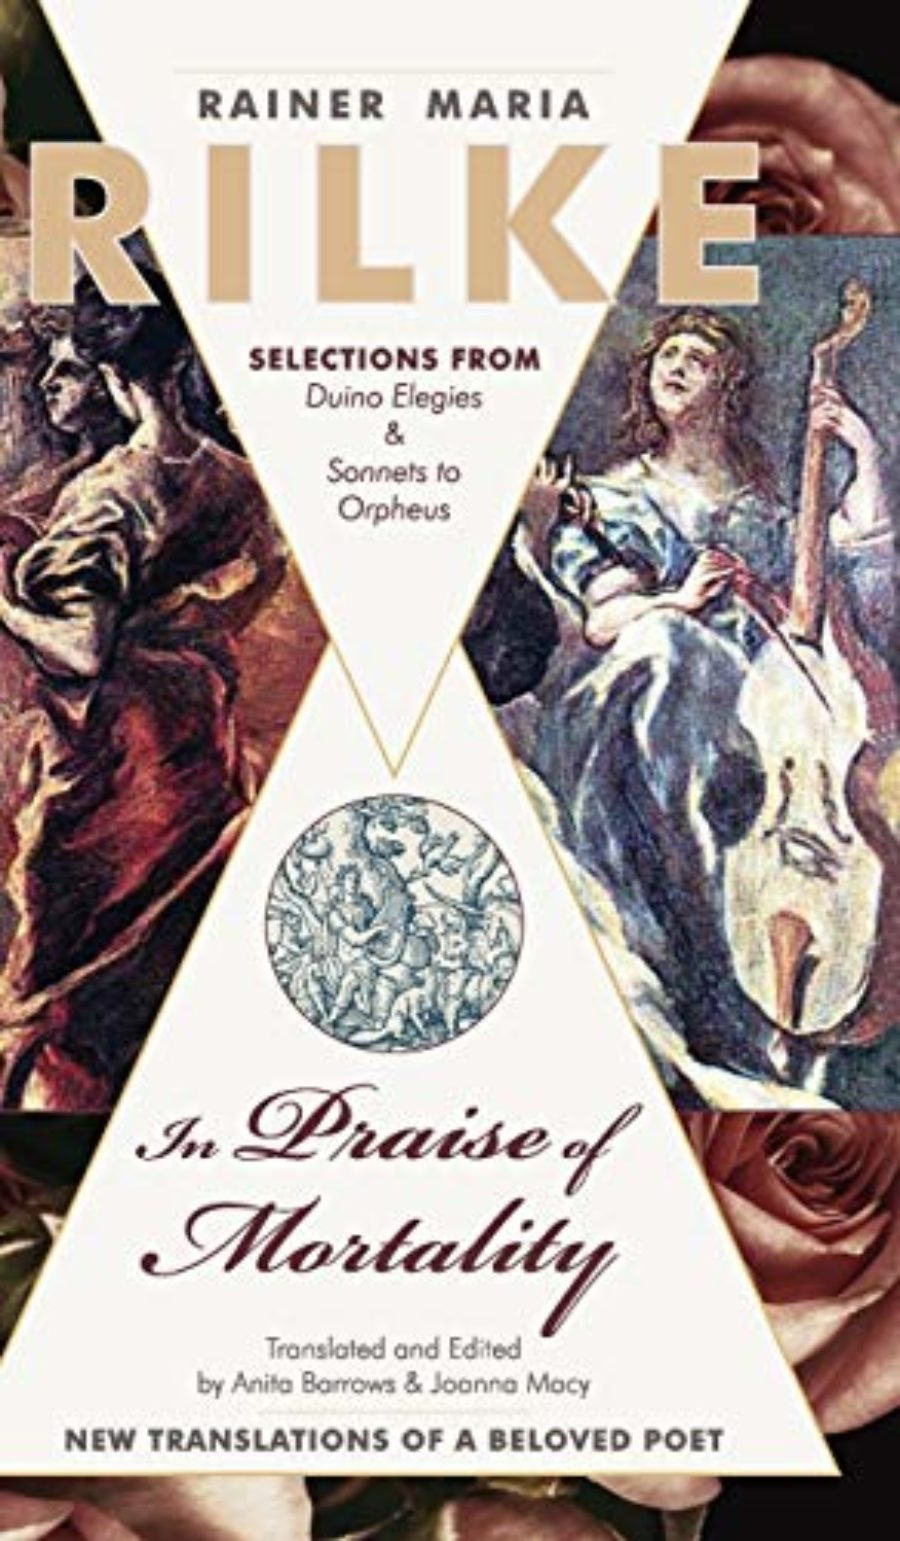 Cover of In Praise of Mortality: Selections from Rainer Maria Rilke's Duino Elegies and Sonnets to Orpheus